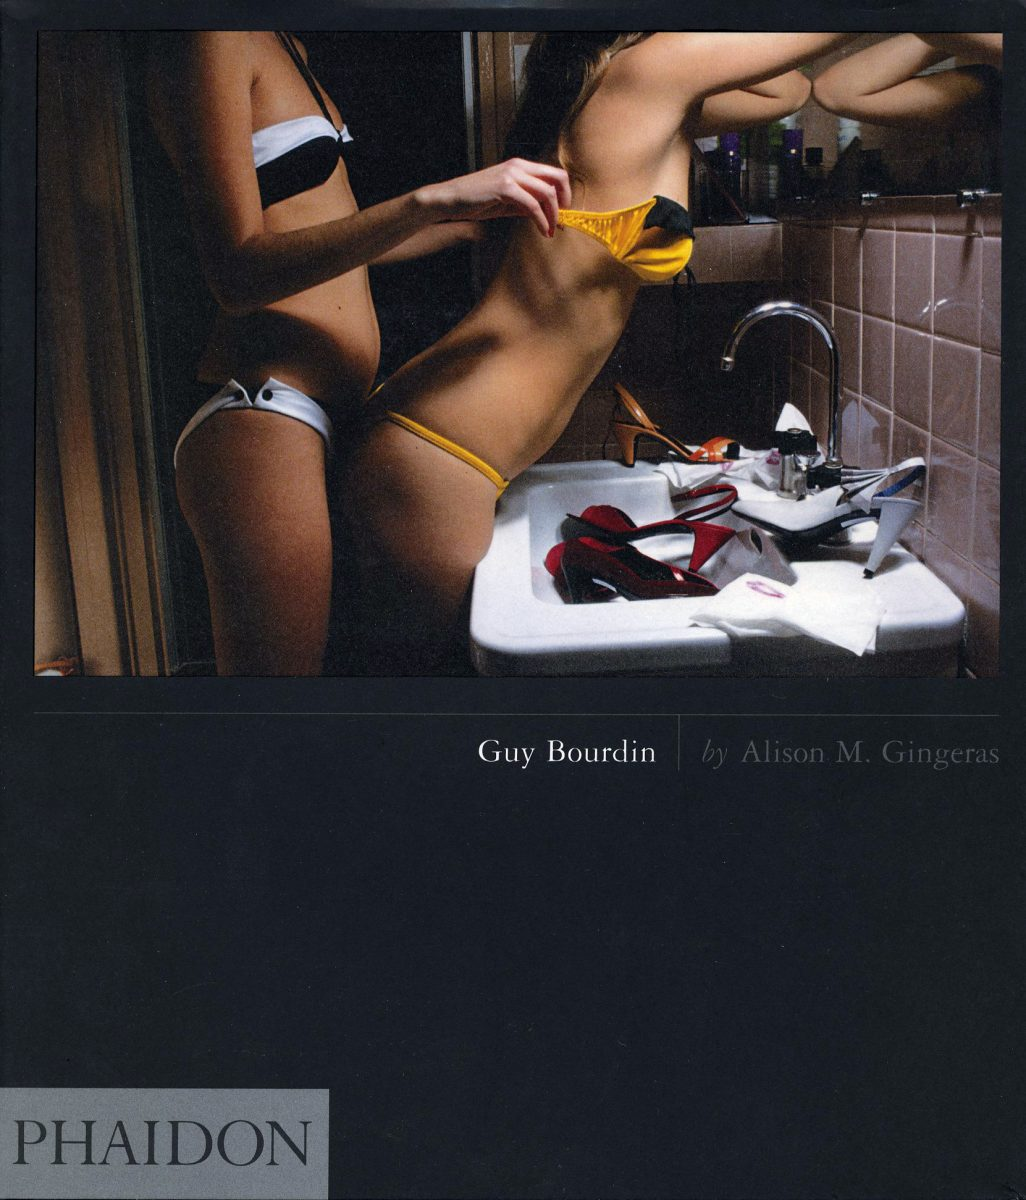 Phaidon : Guy Bourdin